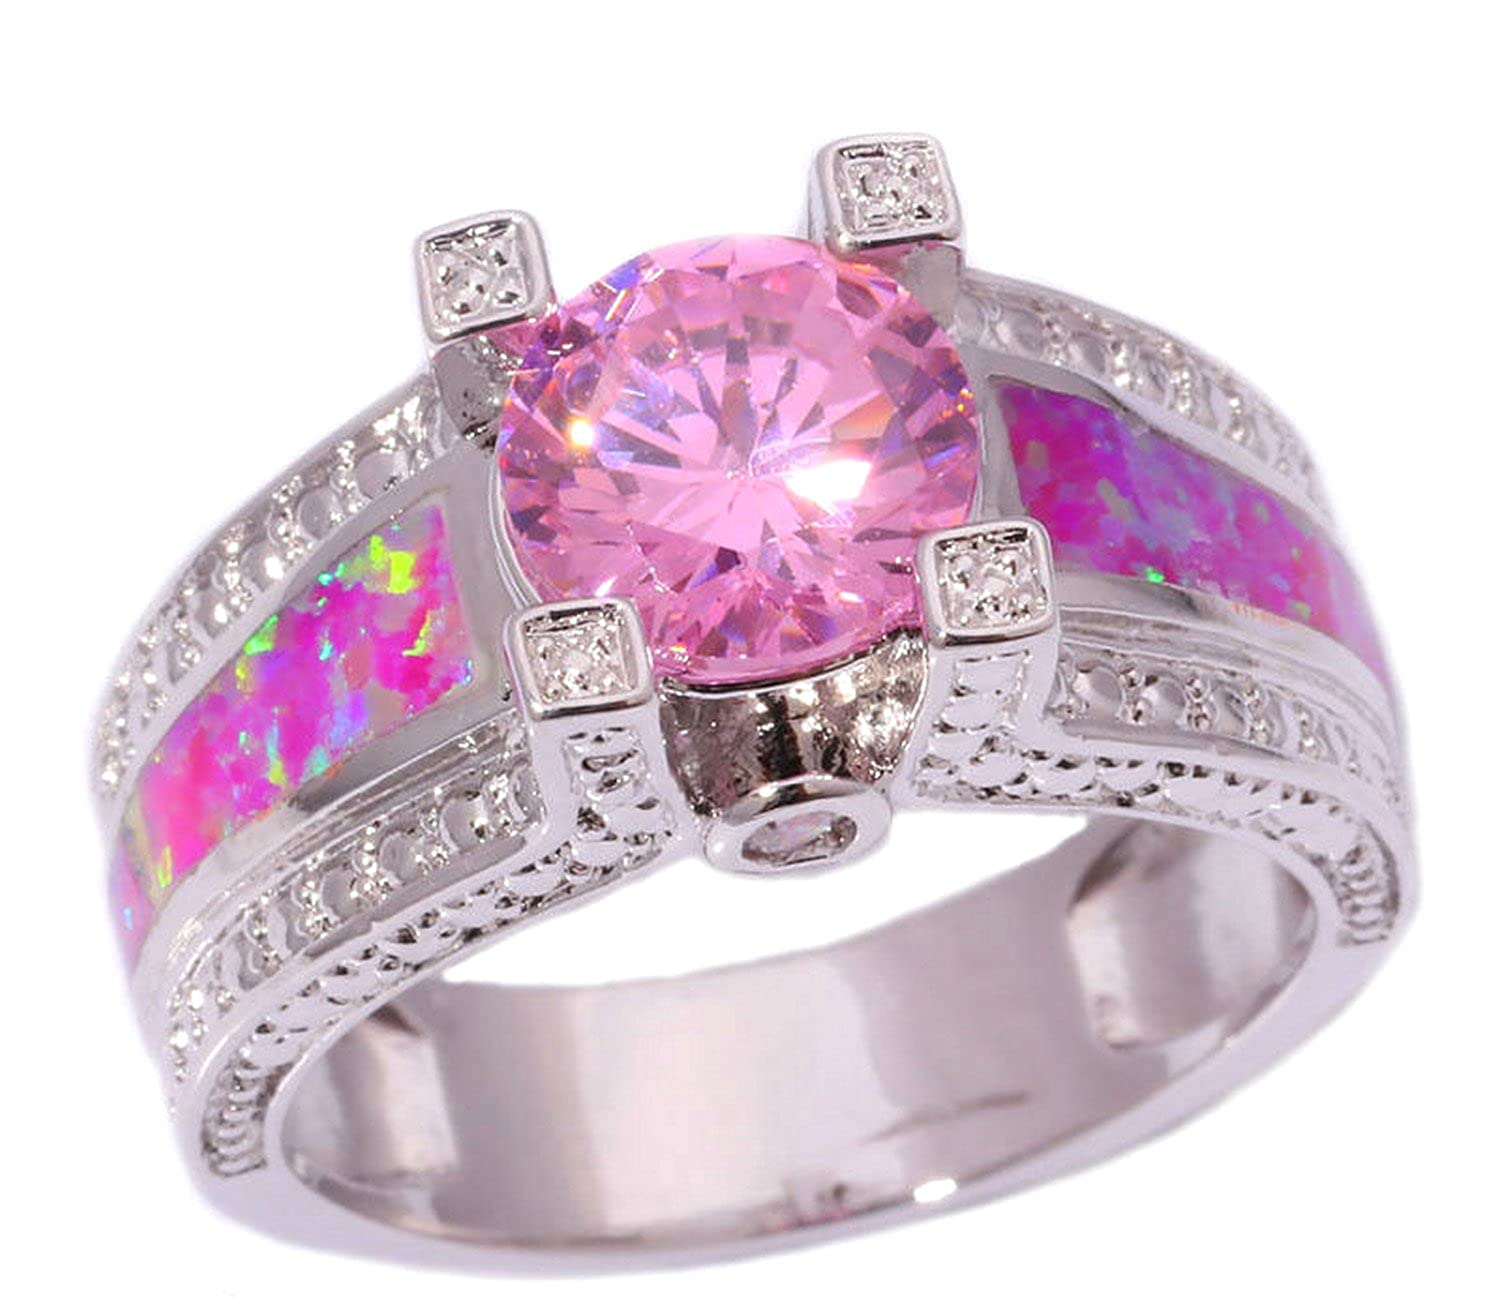 Amazon.com: Dudee Created Opal Pink Zircon rose gold engagement ring ...